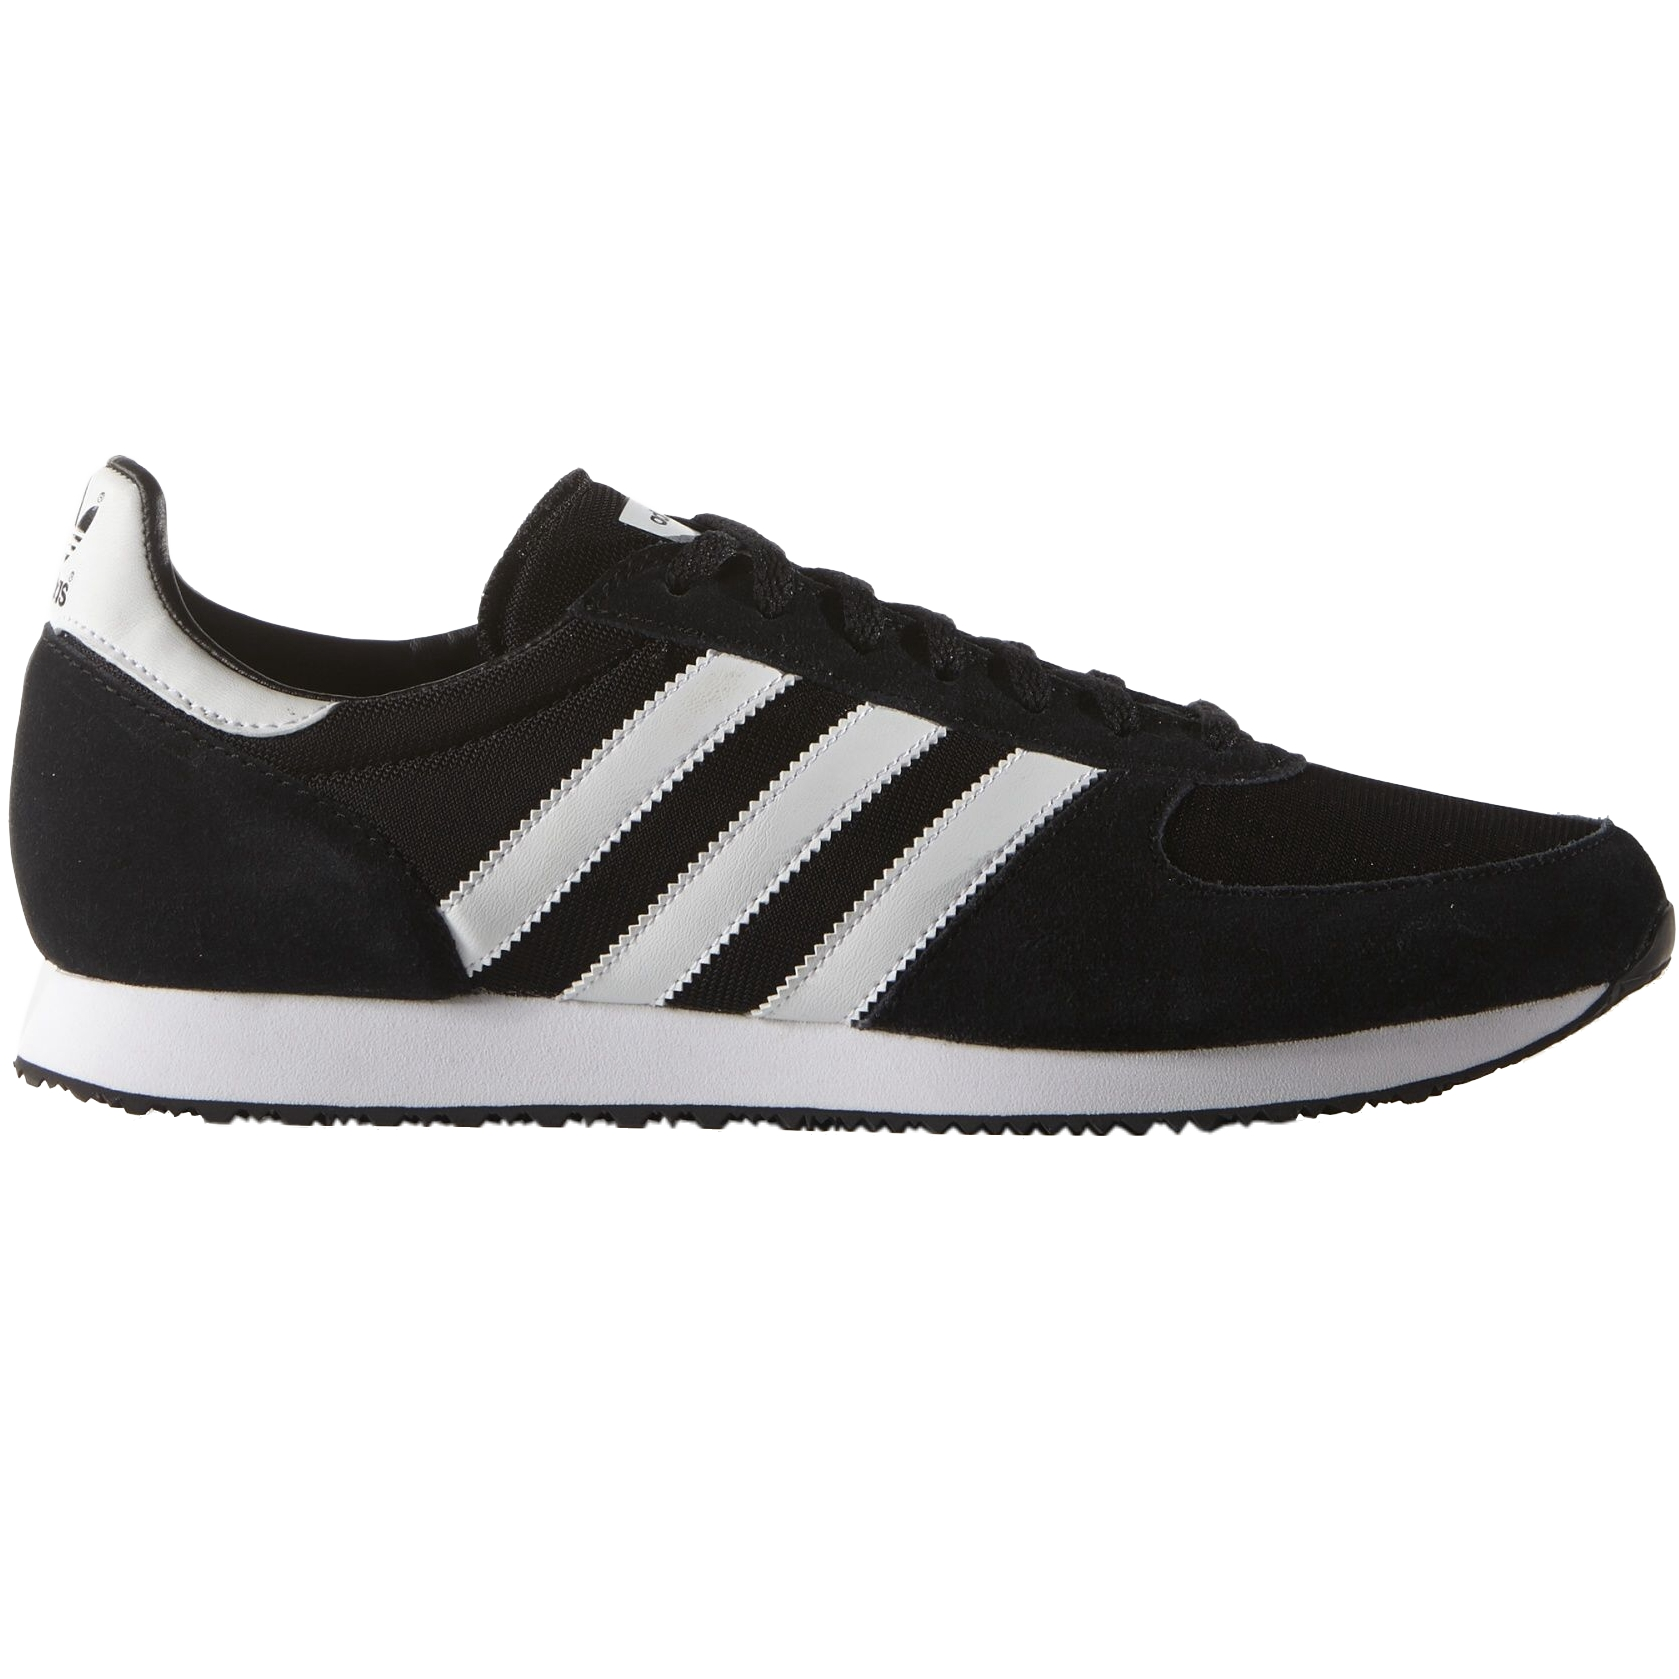 adidas zx racer sneaker weiss. Black Bedroom Furniture Sets. Home Design Ideas